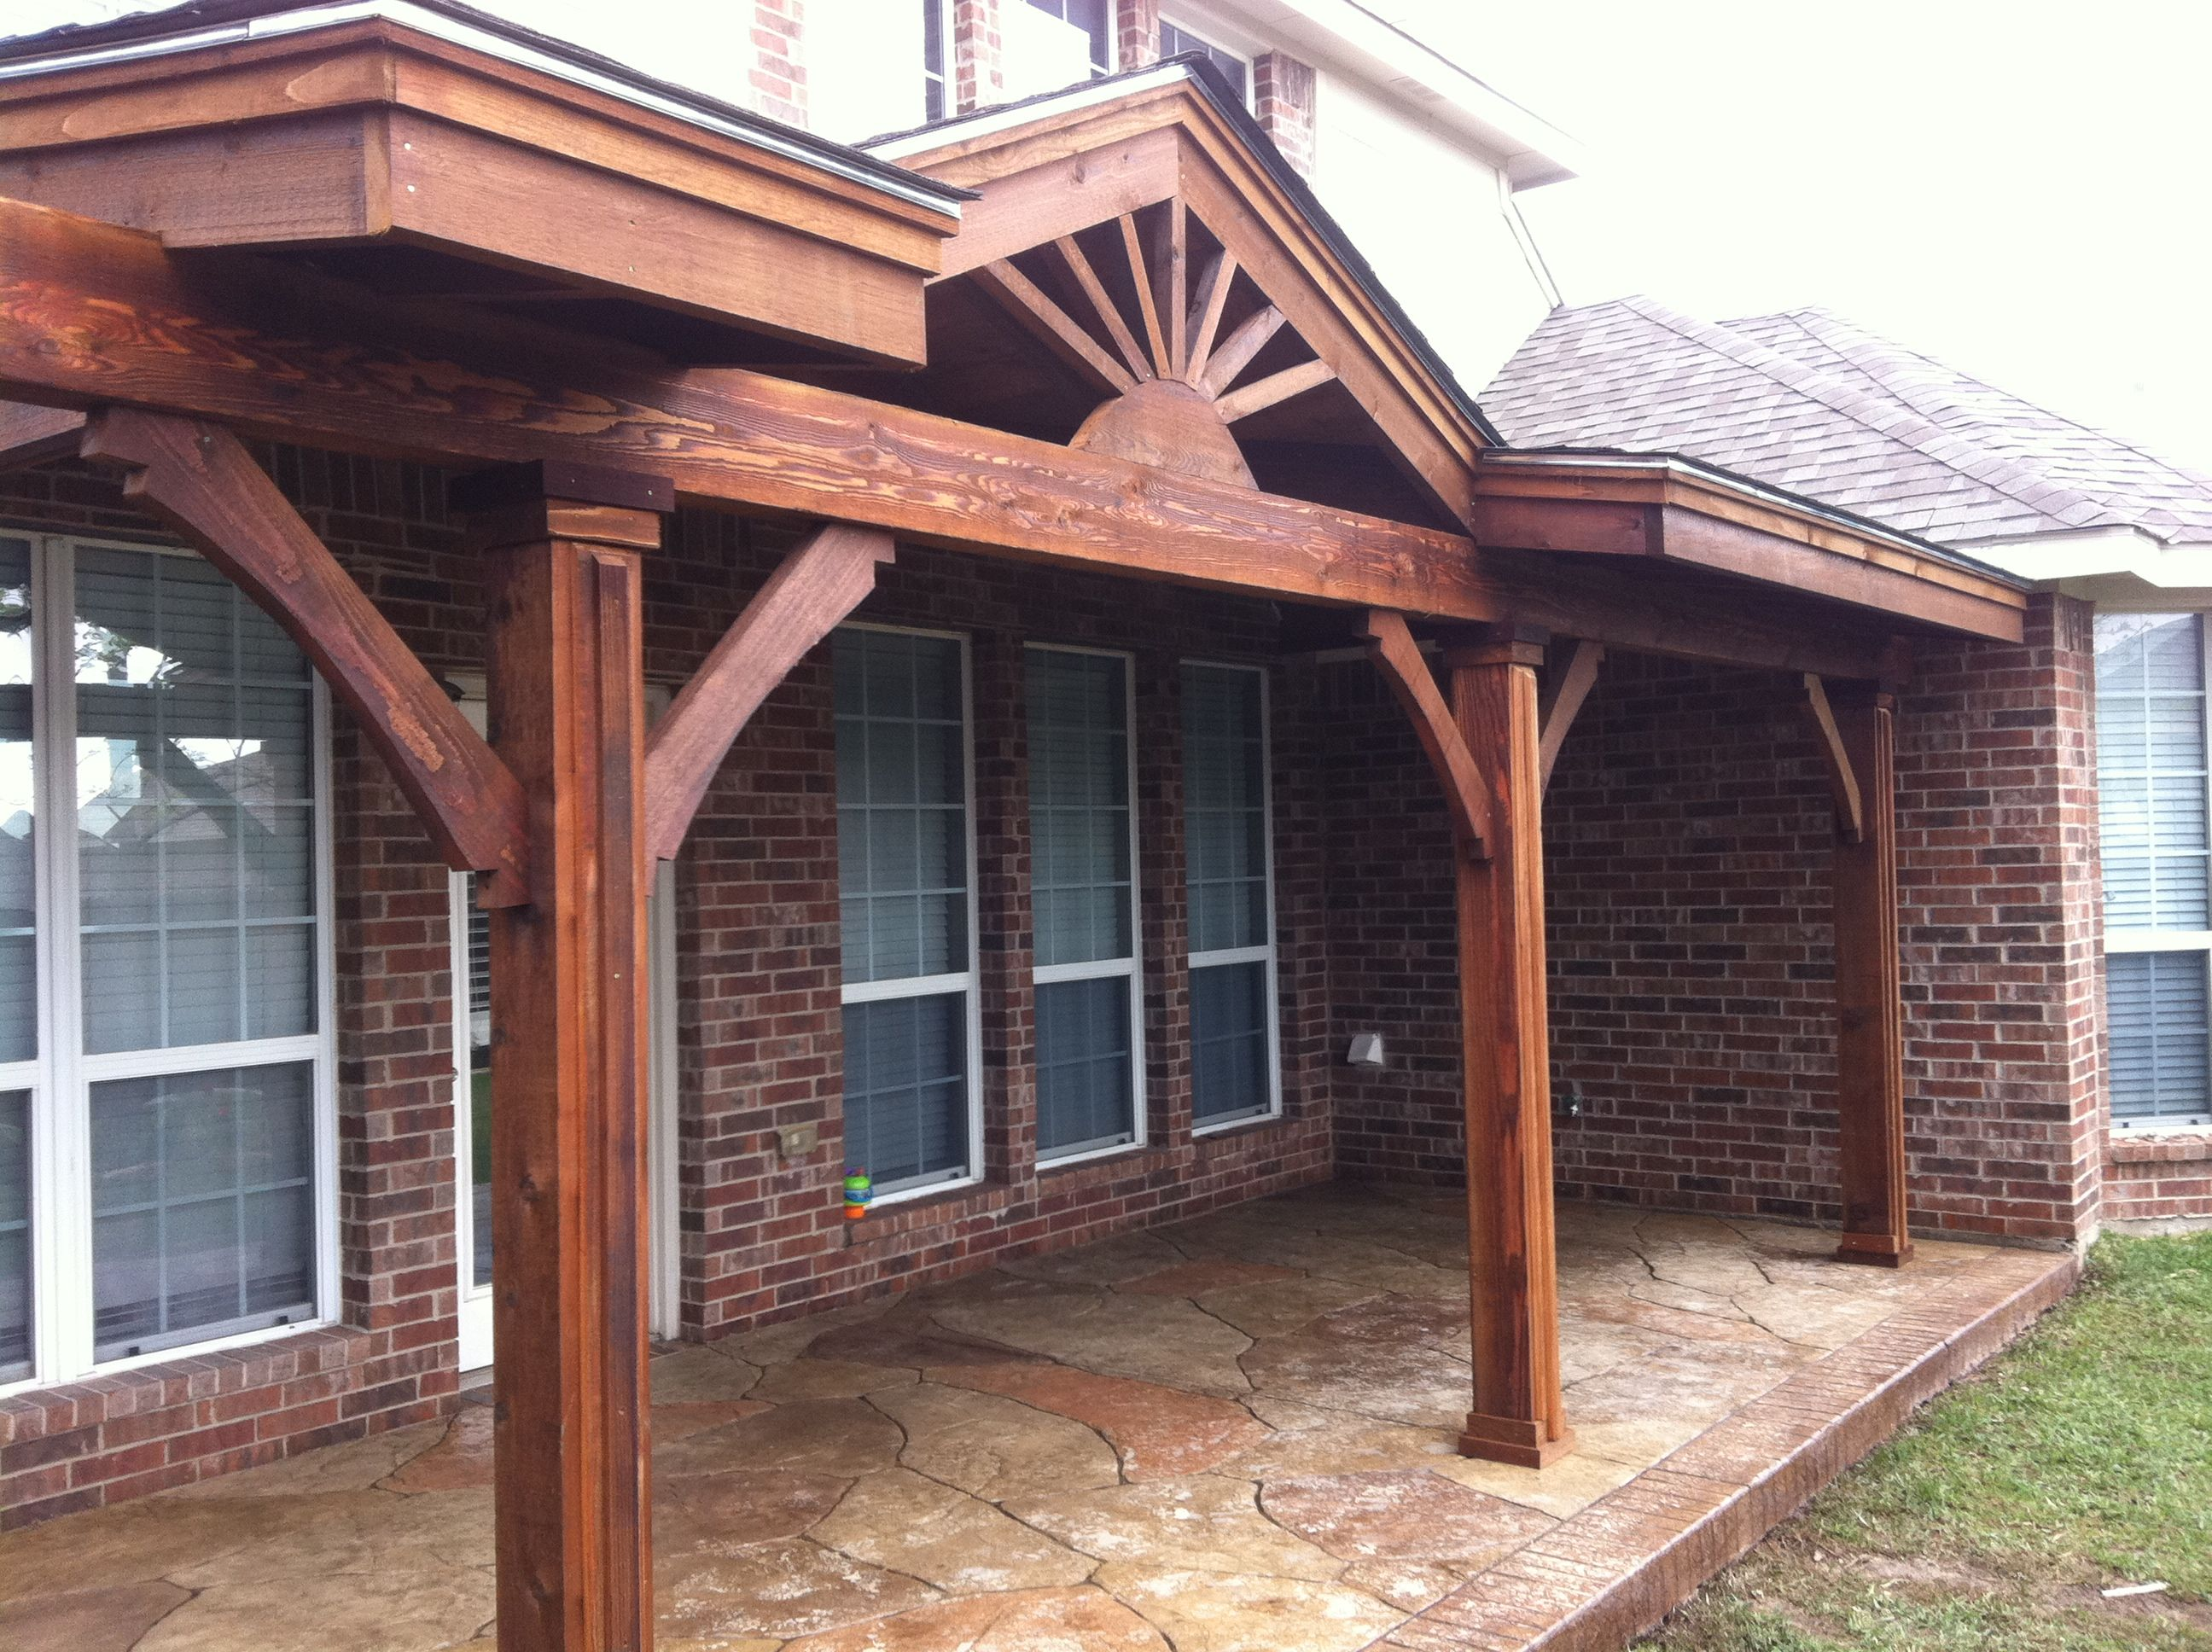 Another Mini Gable Patio Cover With Stamped Concrete Patio